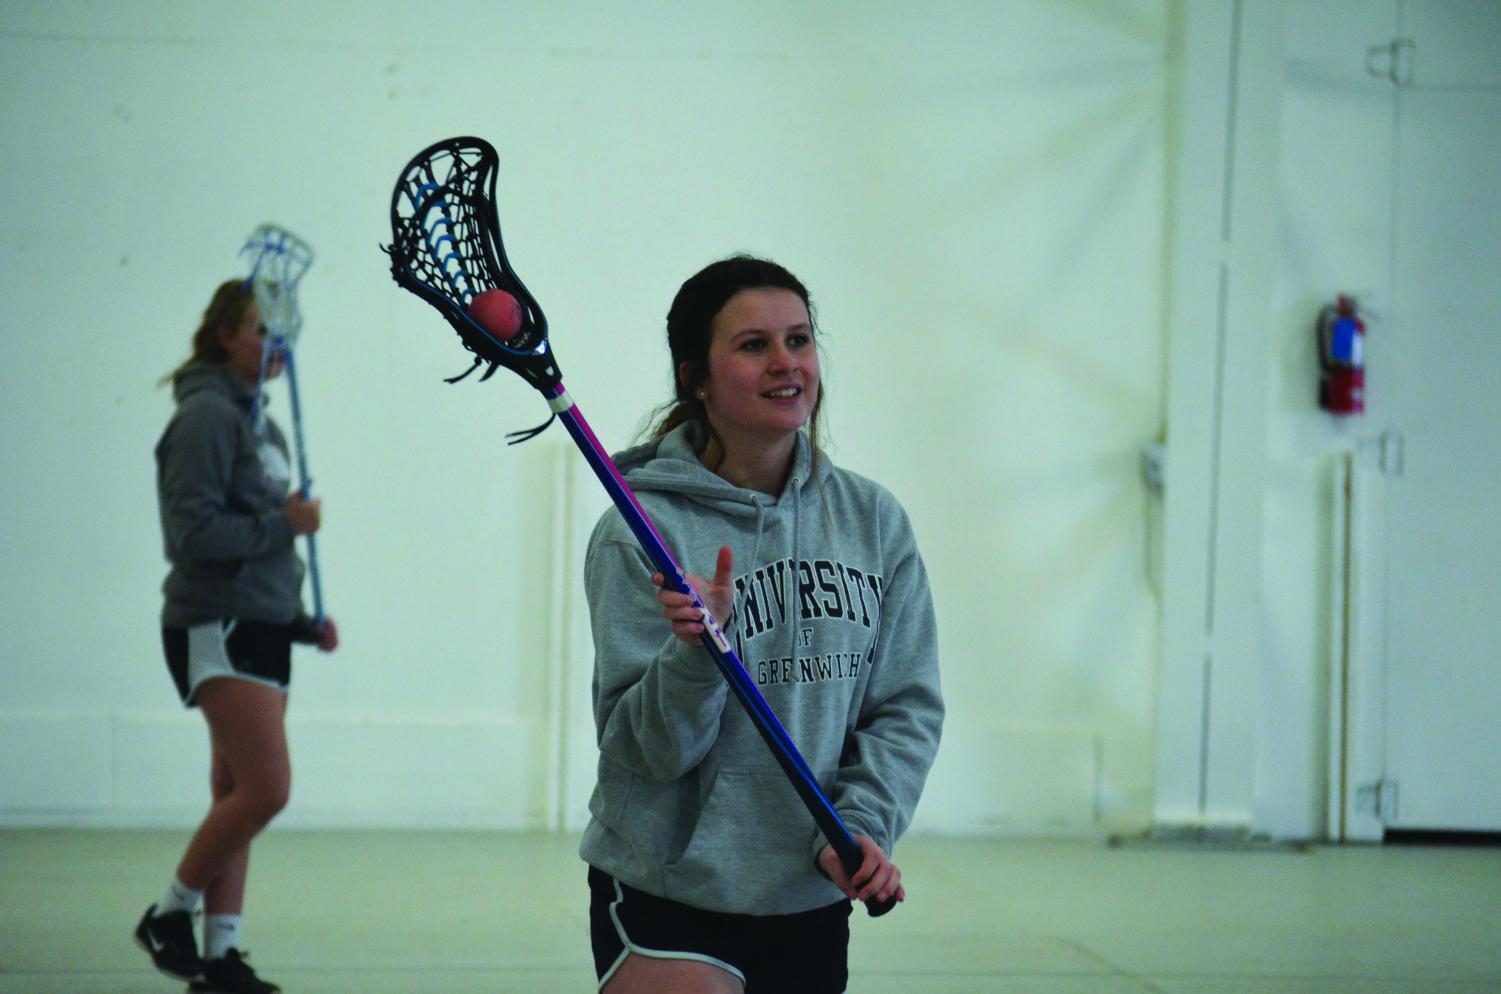 Sophomore starter Ellen Clark catches the ball in the pocket during her weekly lacrosse practice at the Bonner County Fairgrounds in Ponderay, Idaho.